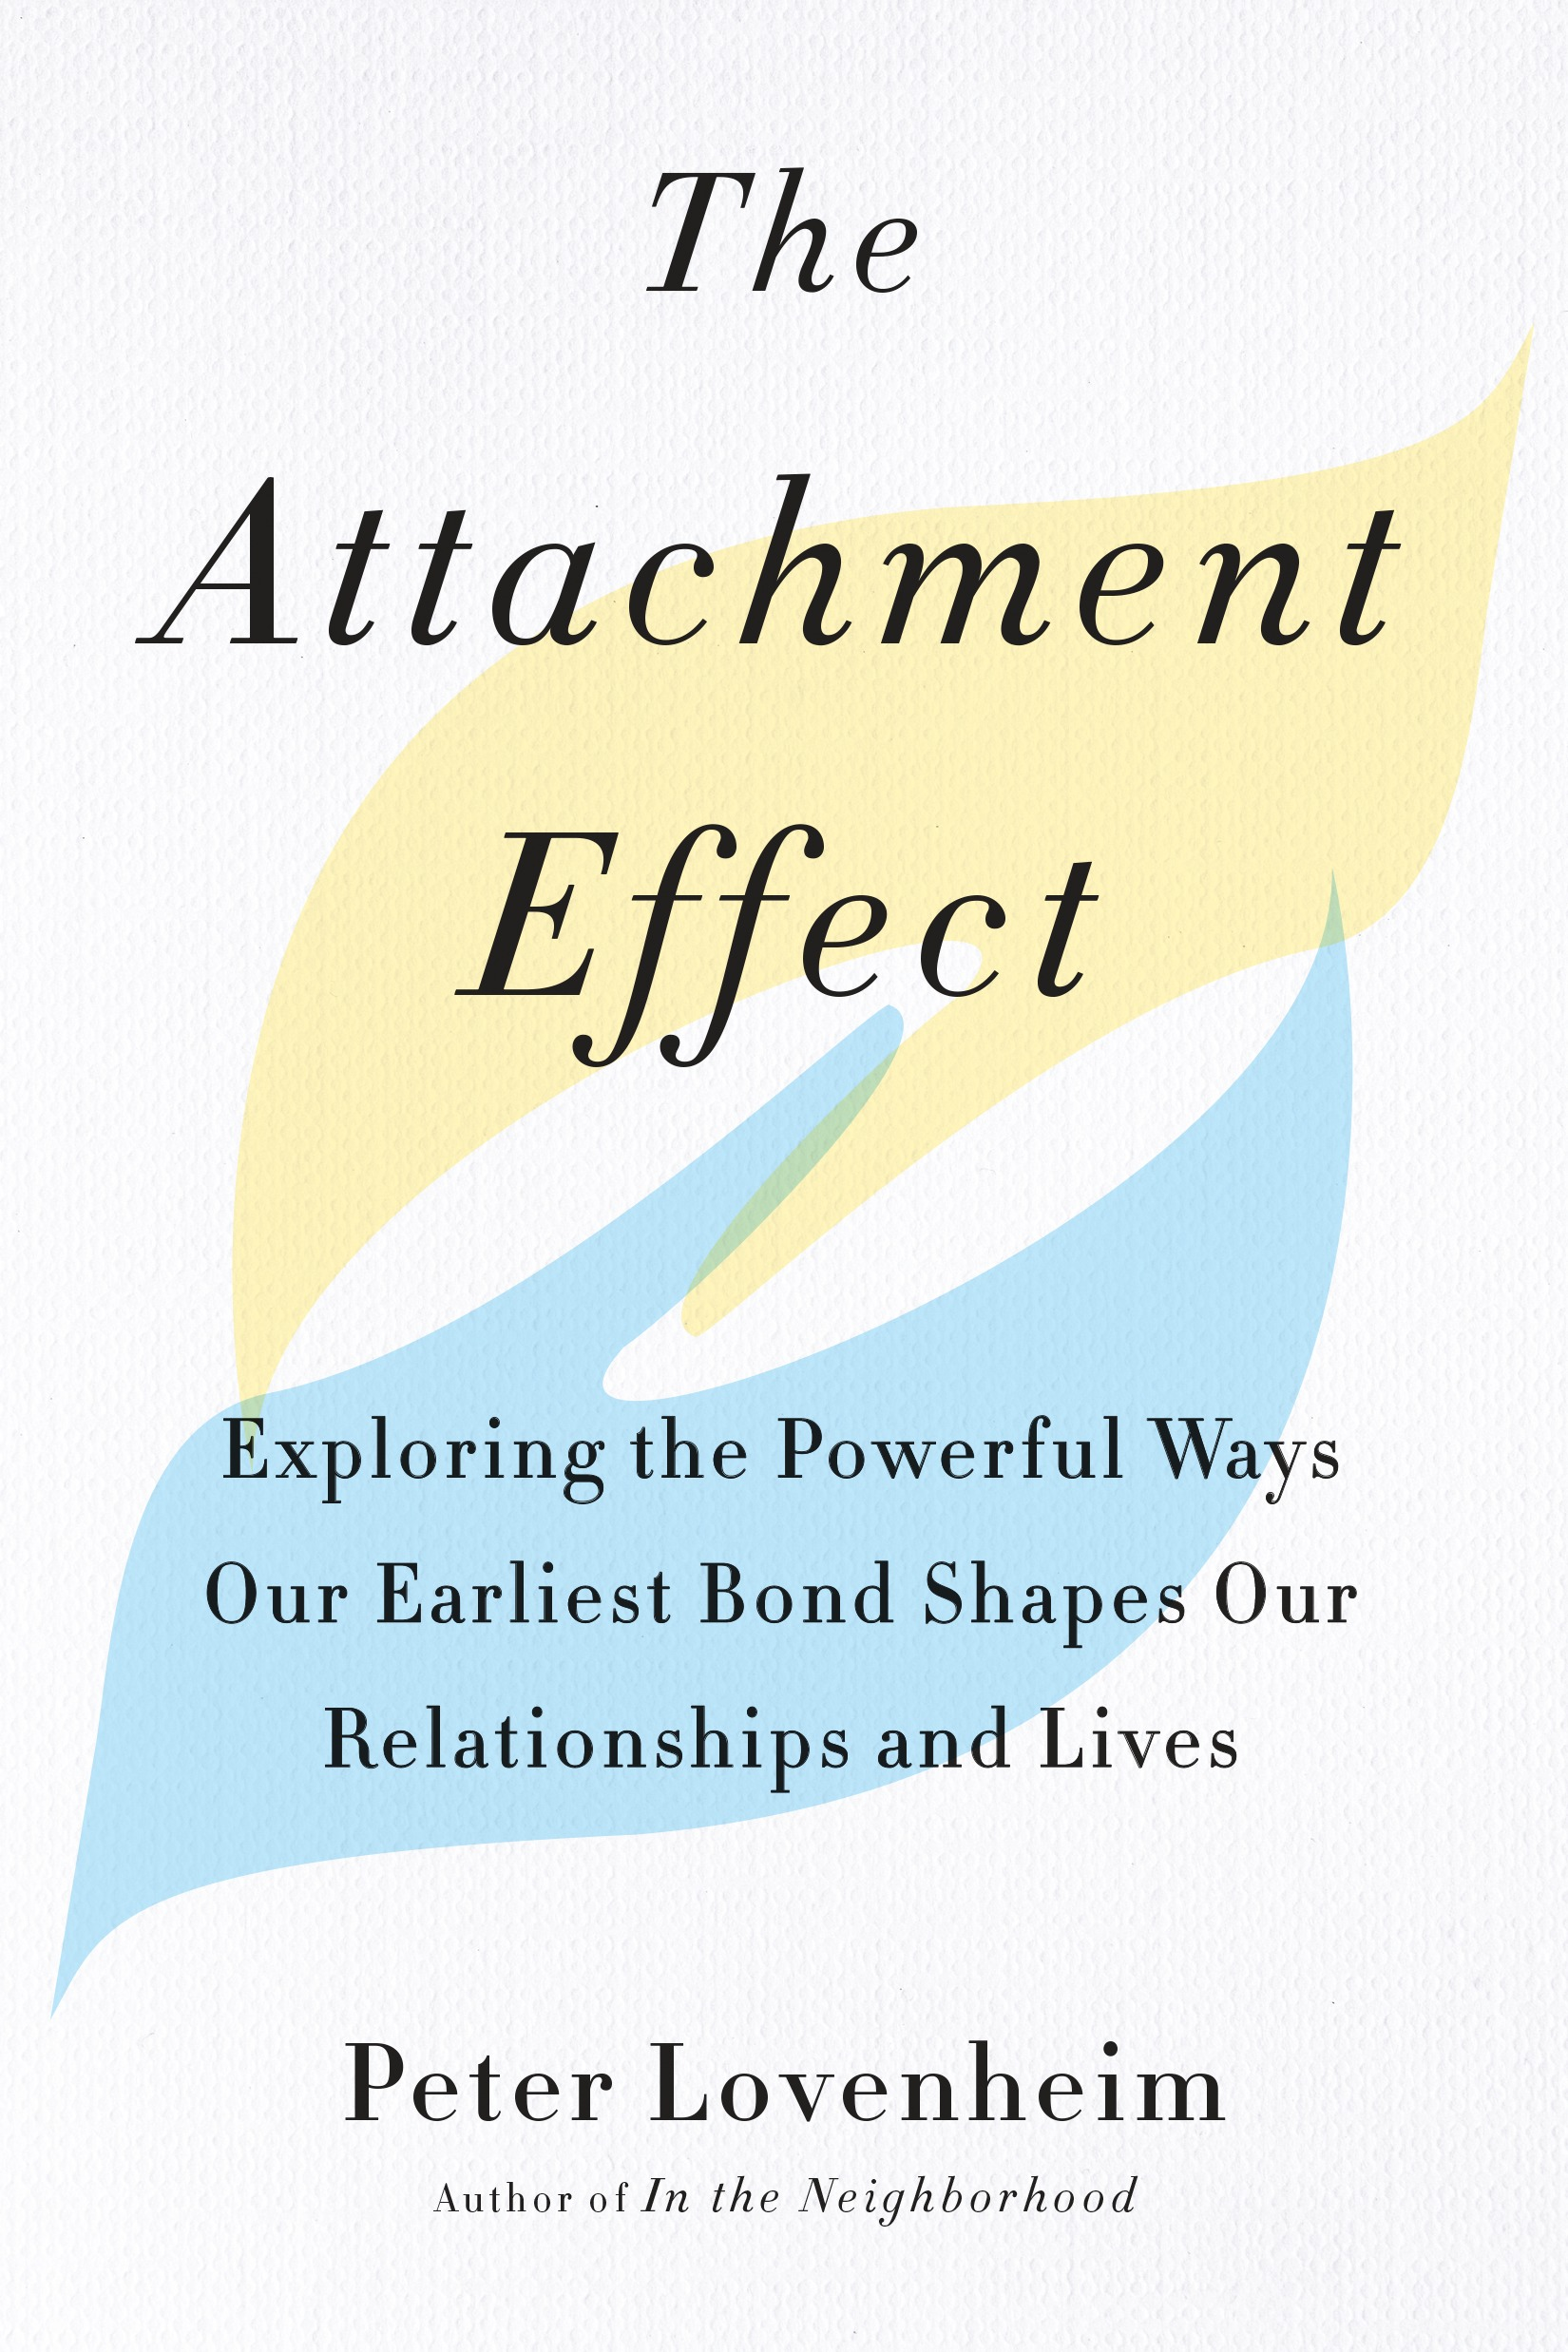 Book review of The Attachment Effect: Exploring the Powerful